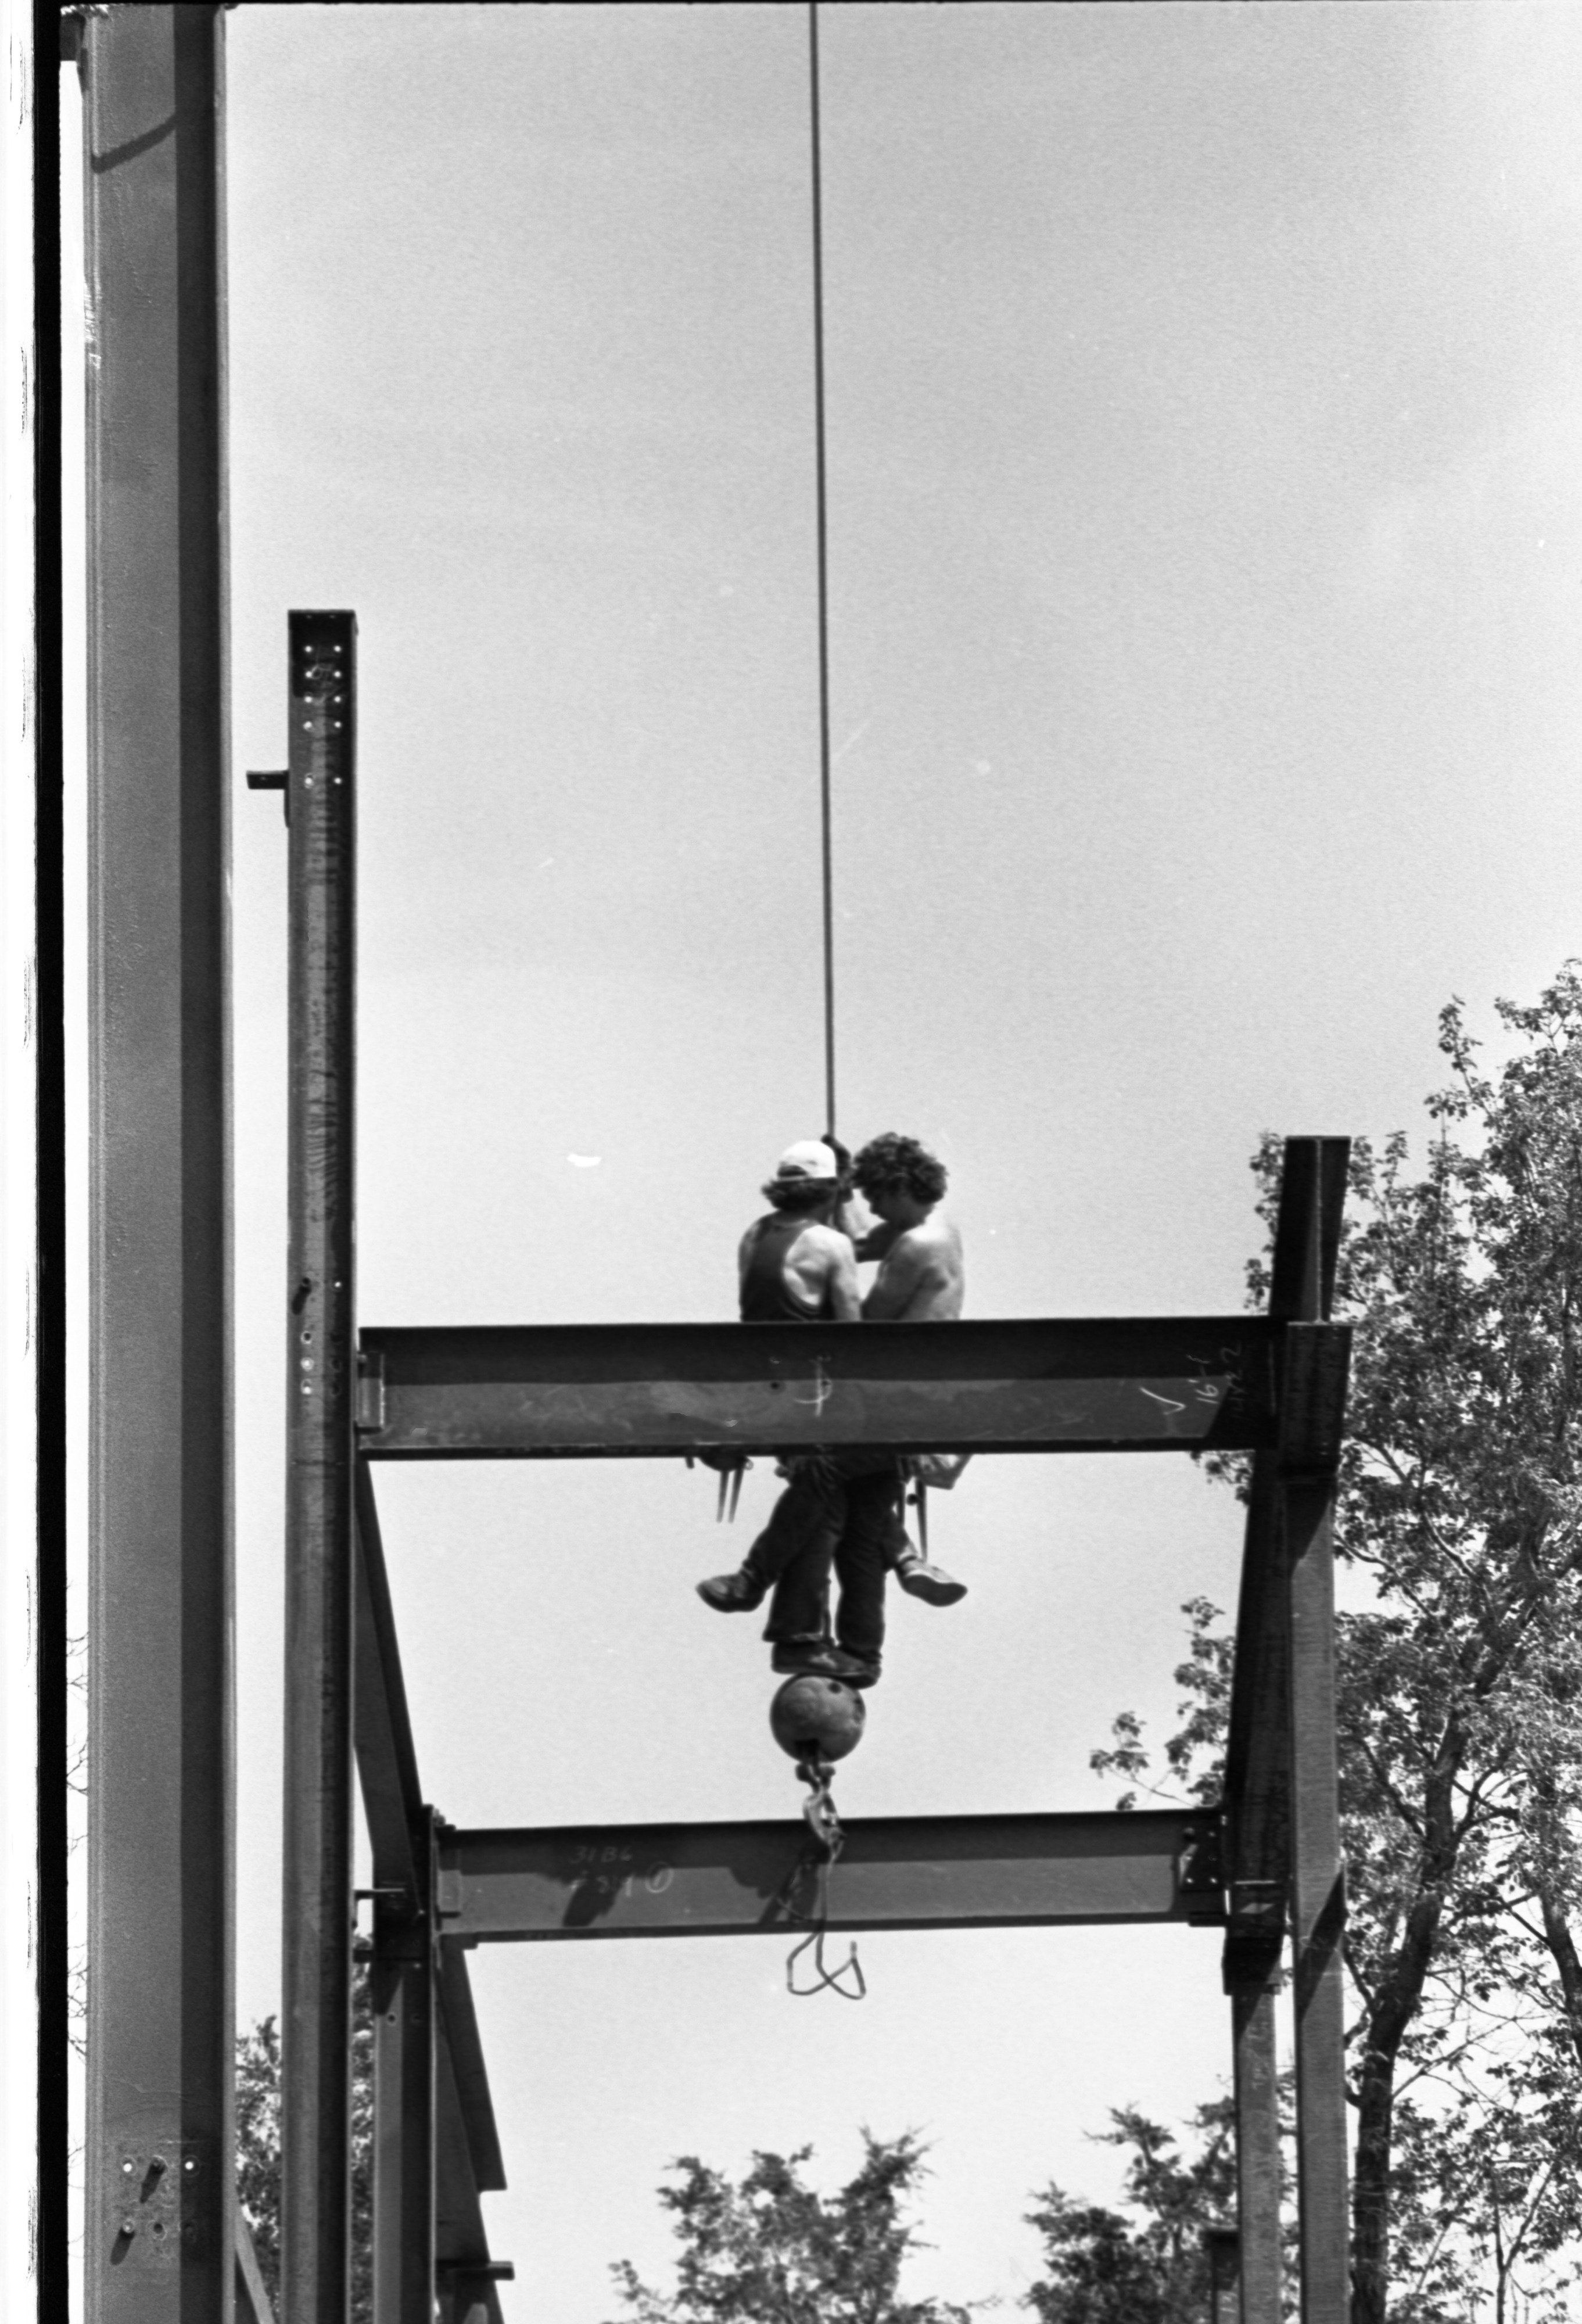 Construction Workers On Crane For Steel Work On The Gerald R. Ford Presidential Library, May 11, 1979 image